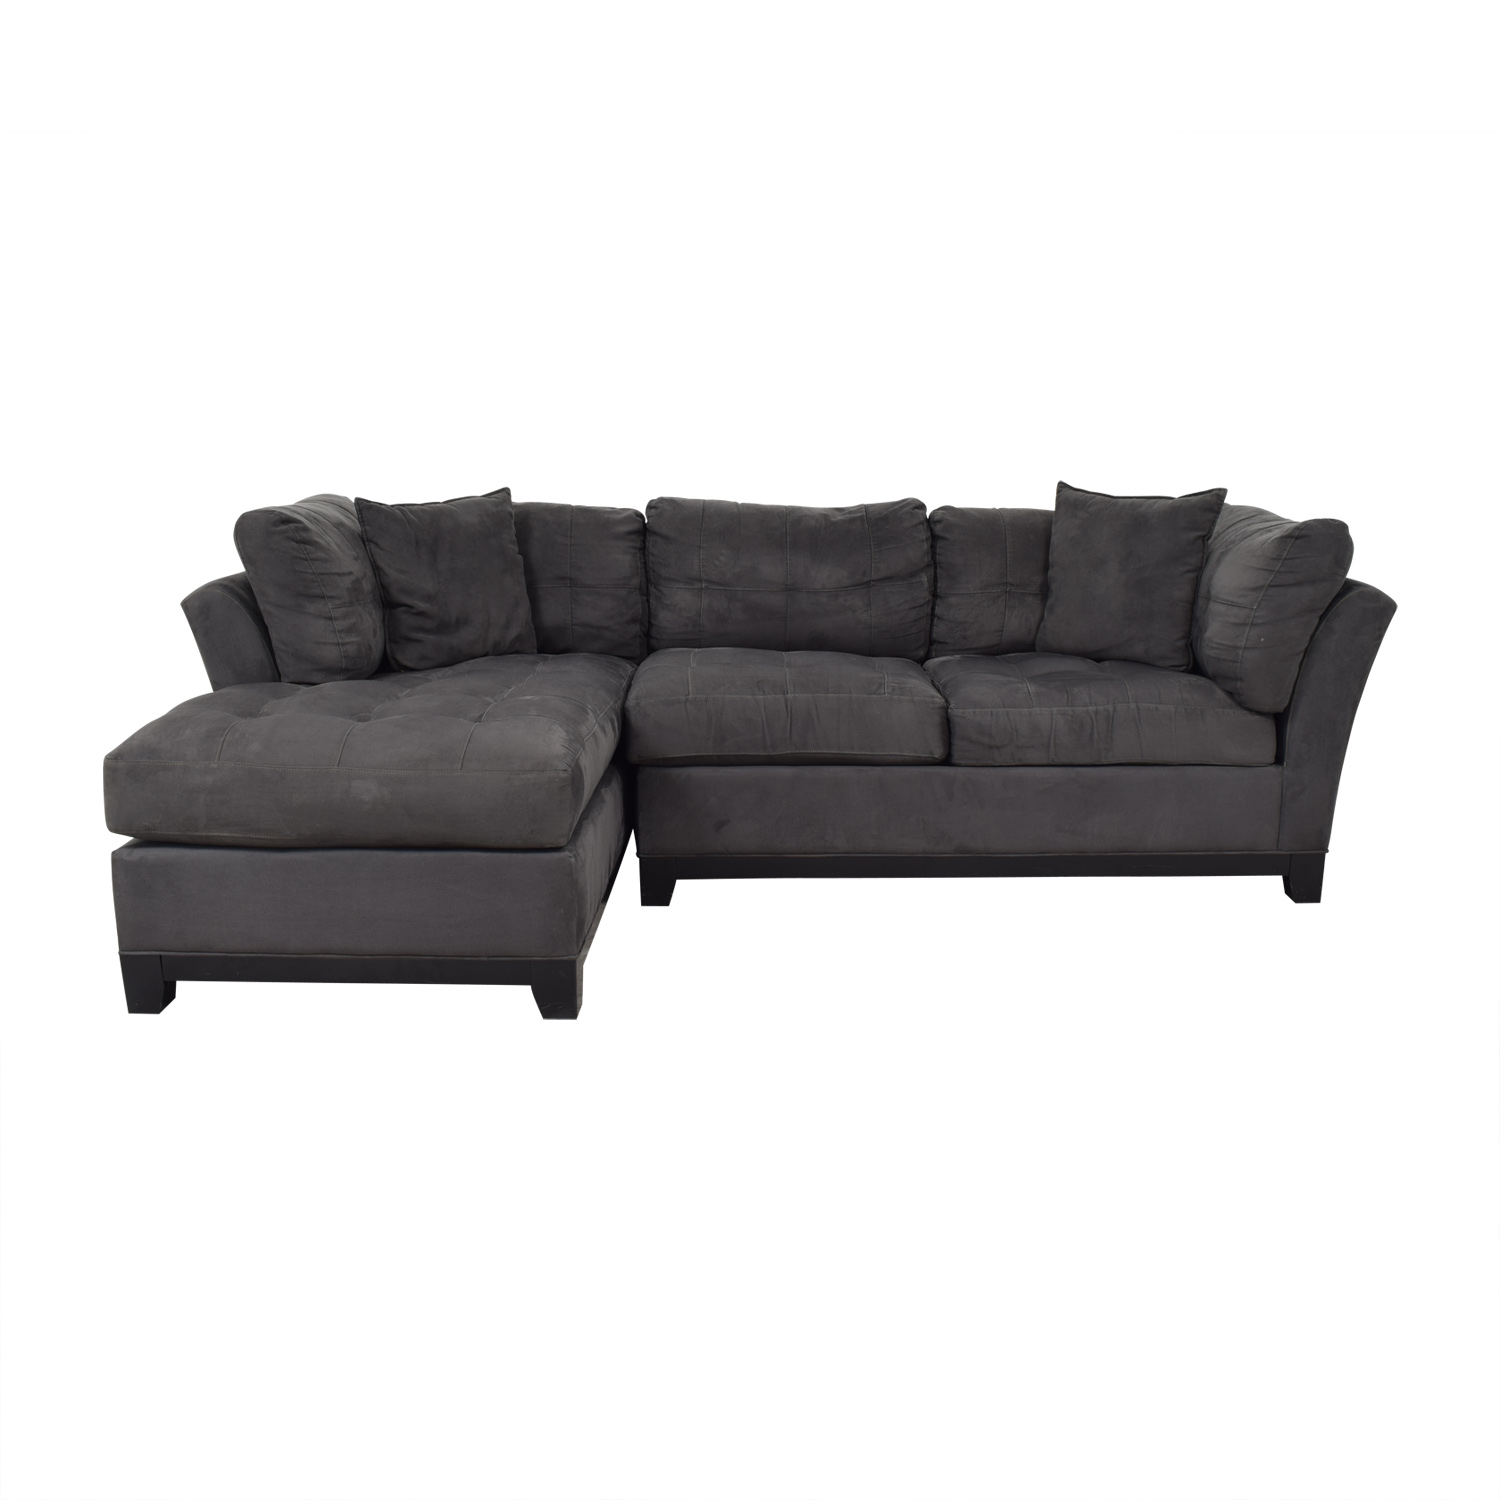 shop Cindy Crawford Home Cindy Crawford Home Metropolis Grey Microfiber Chaise Sectional online